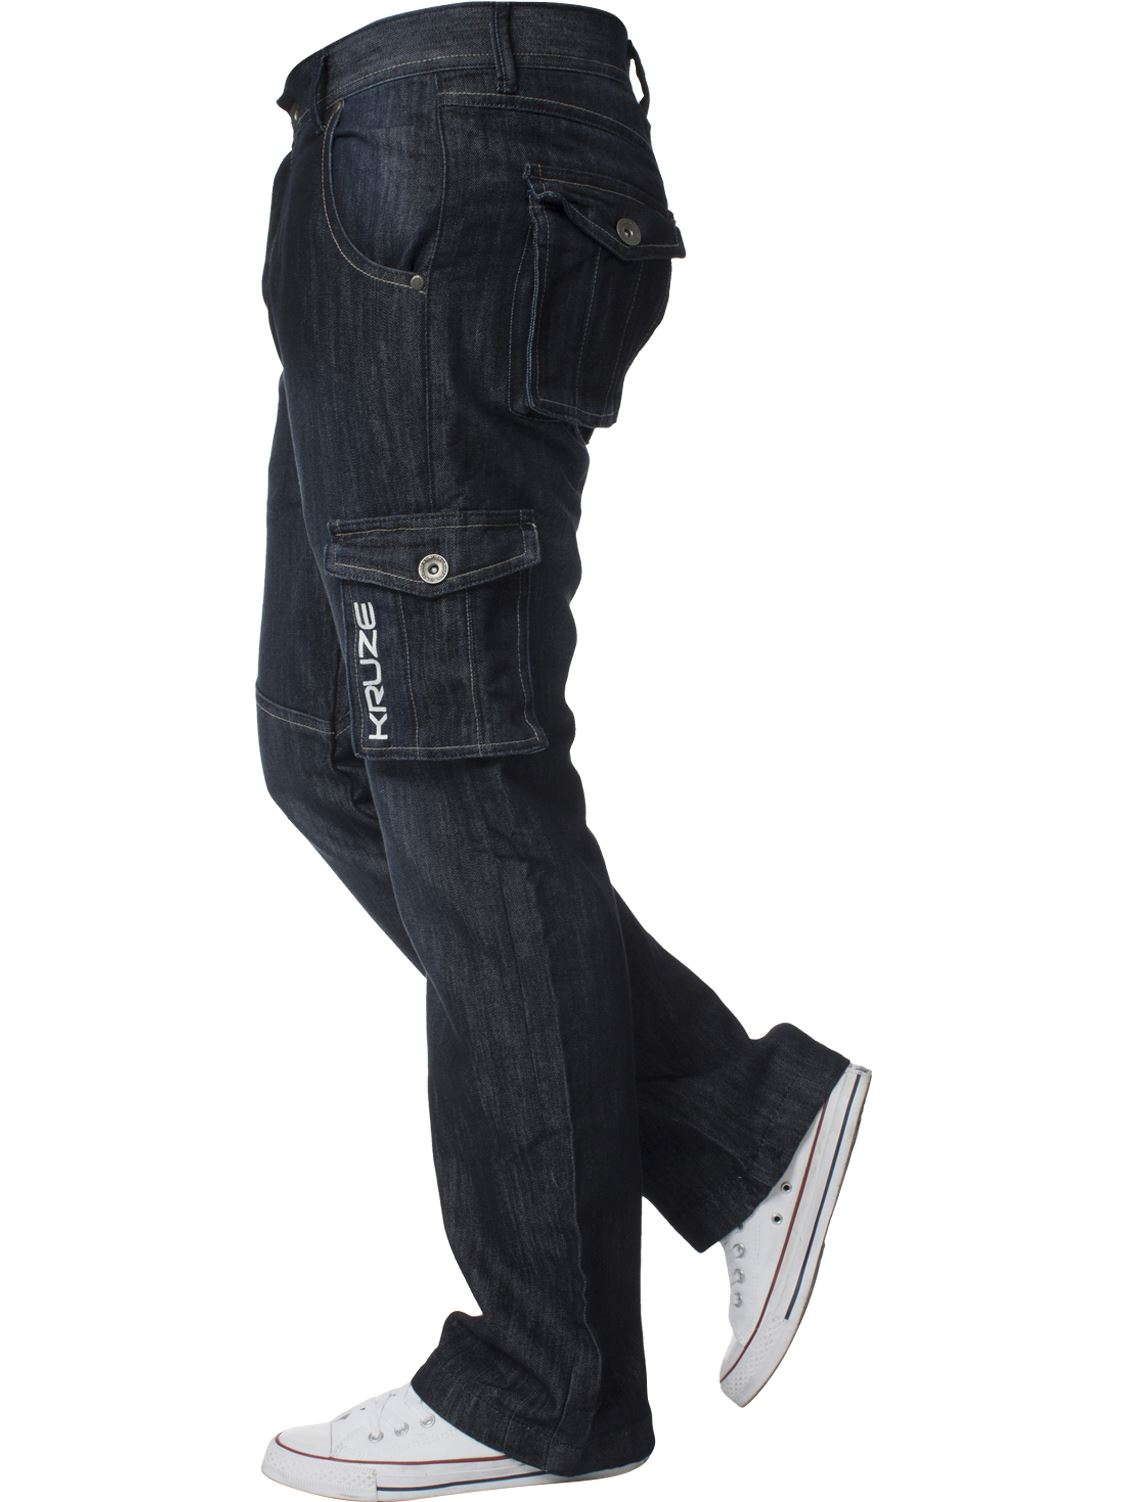 KRUZE-Mens-Combat-Jeans-Casual-Cargo-Work-Pants-Denim-Trousers-All-Waist-Sizes thumbnail 21